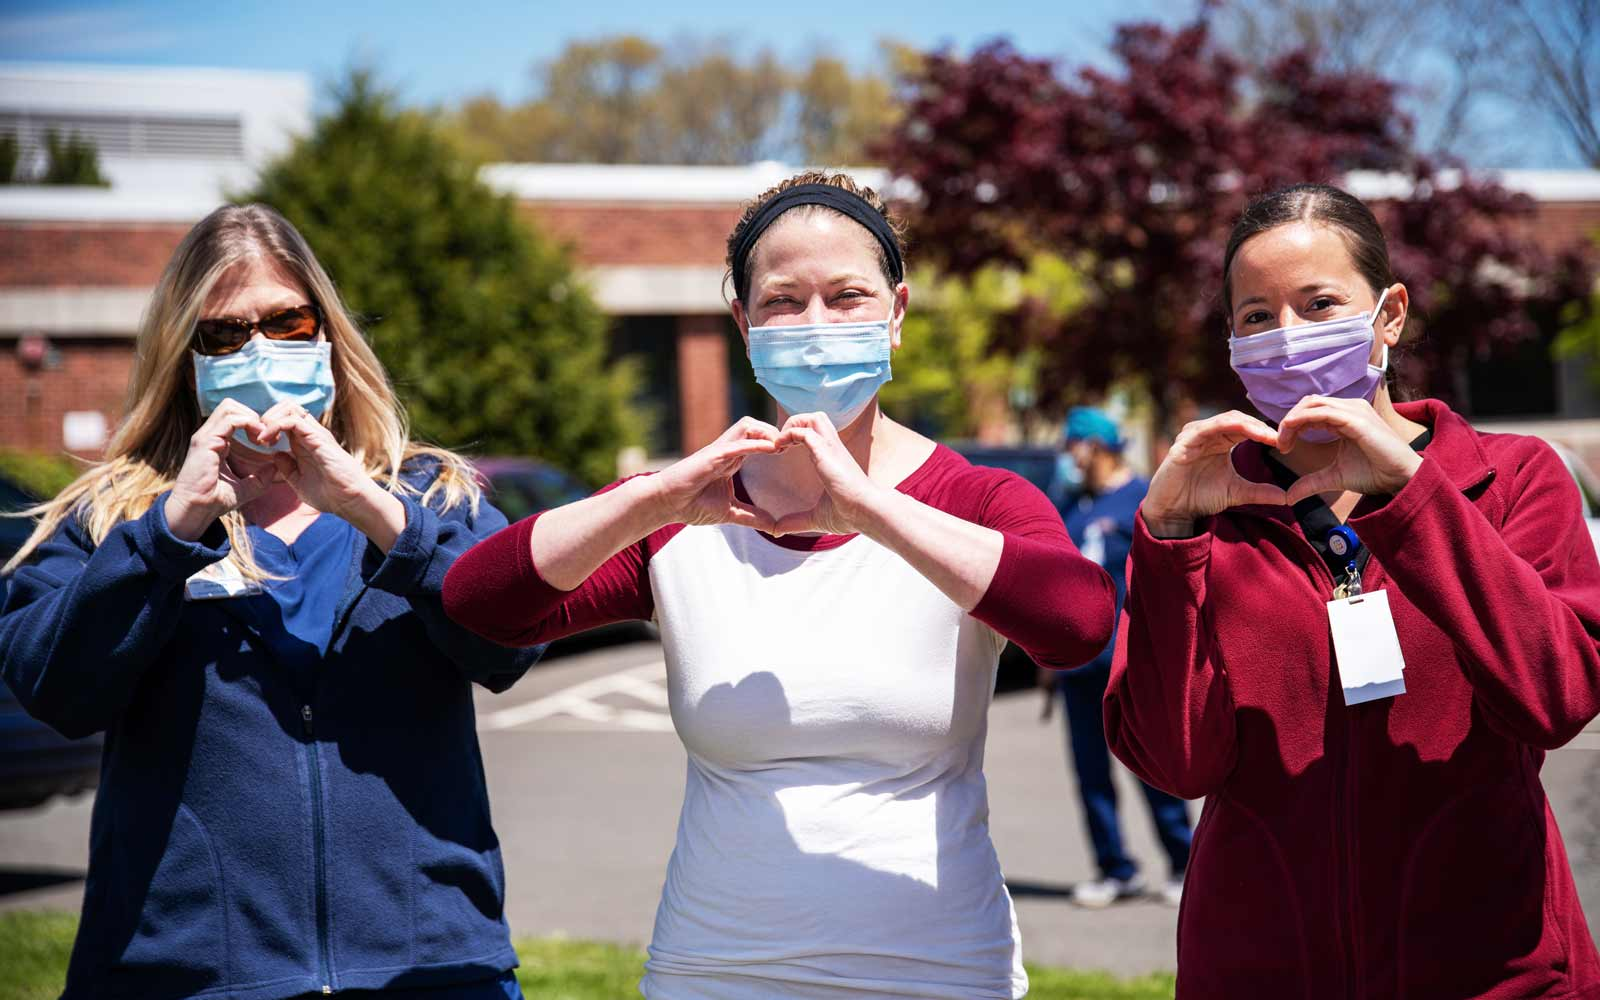 Three women wearing masks making hearts with their hands.